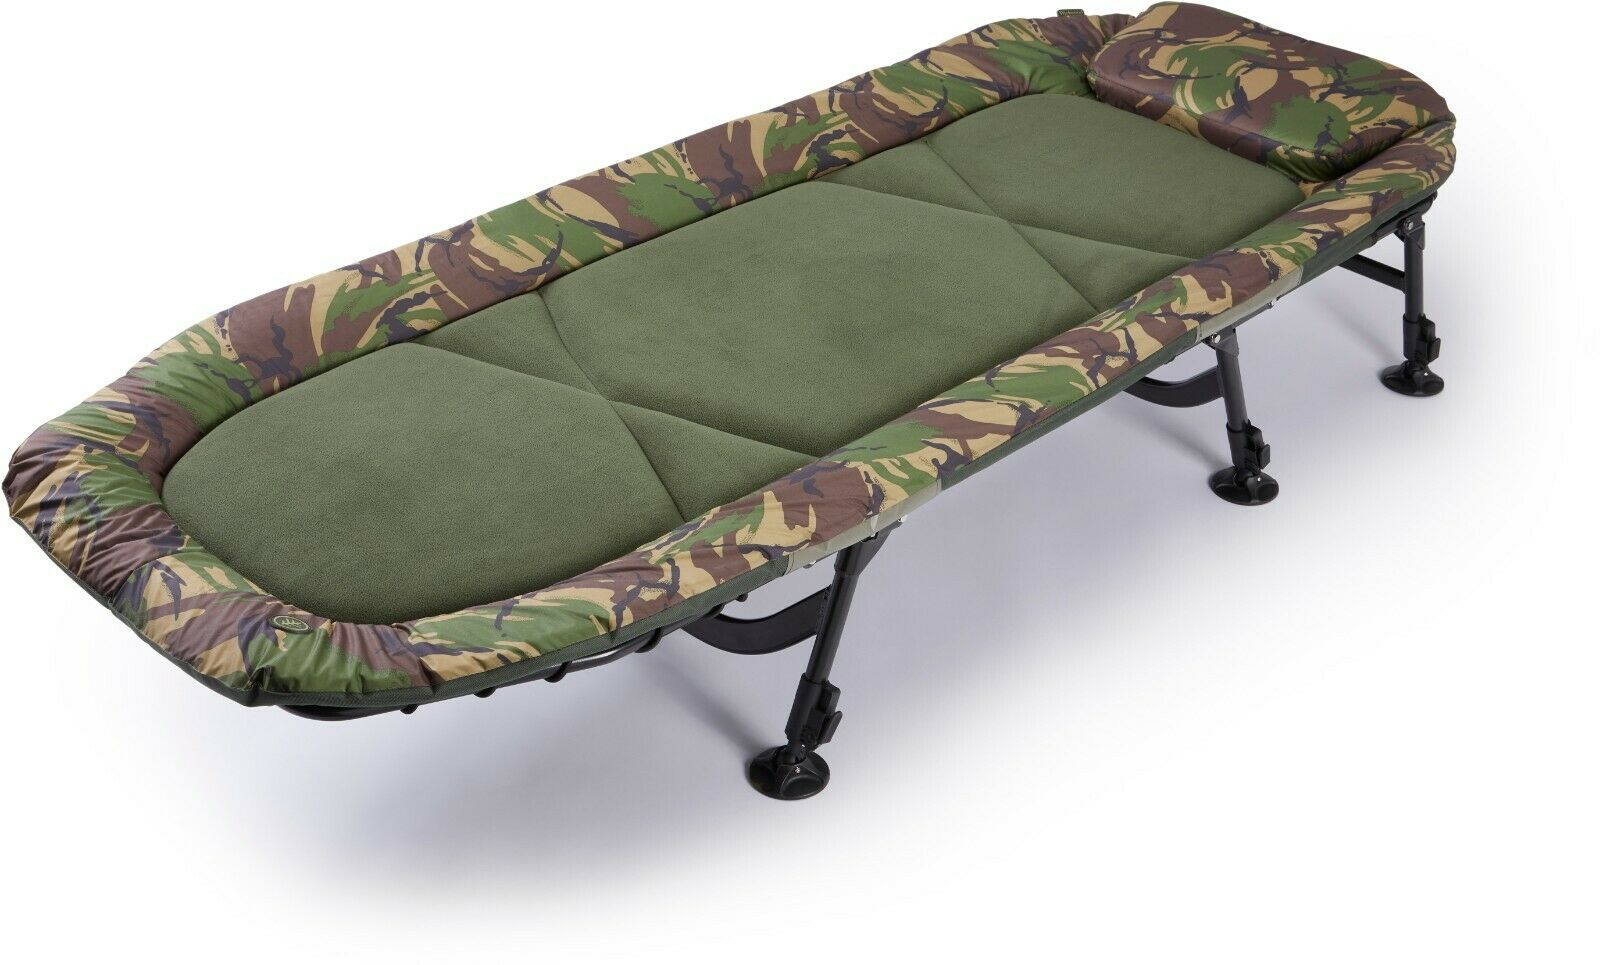 Wychwood Tactical X Flatbed NEW Carp Fishing Bedchair *All Models*